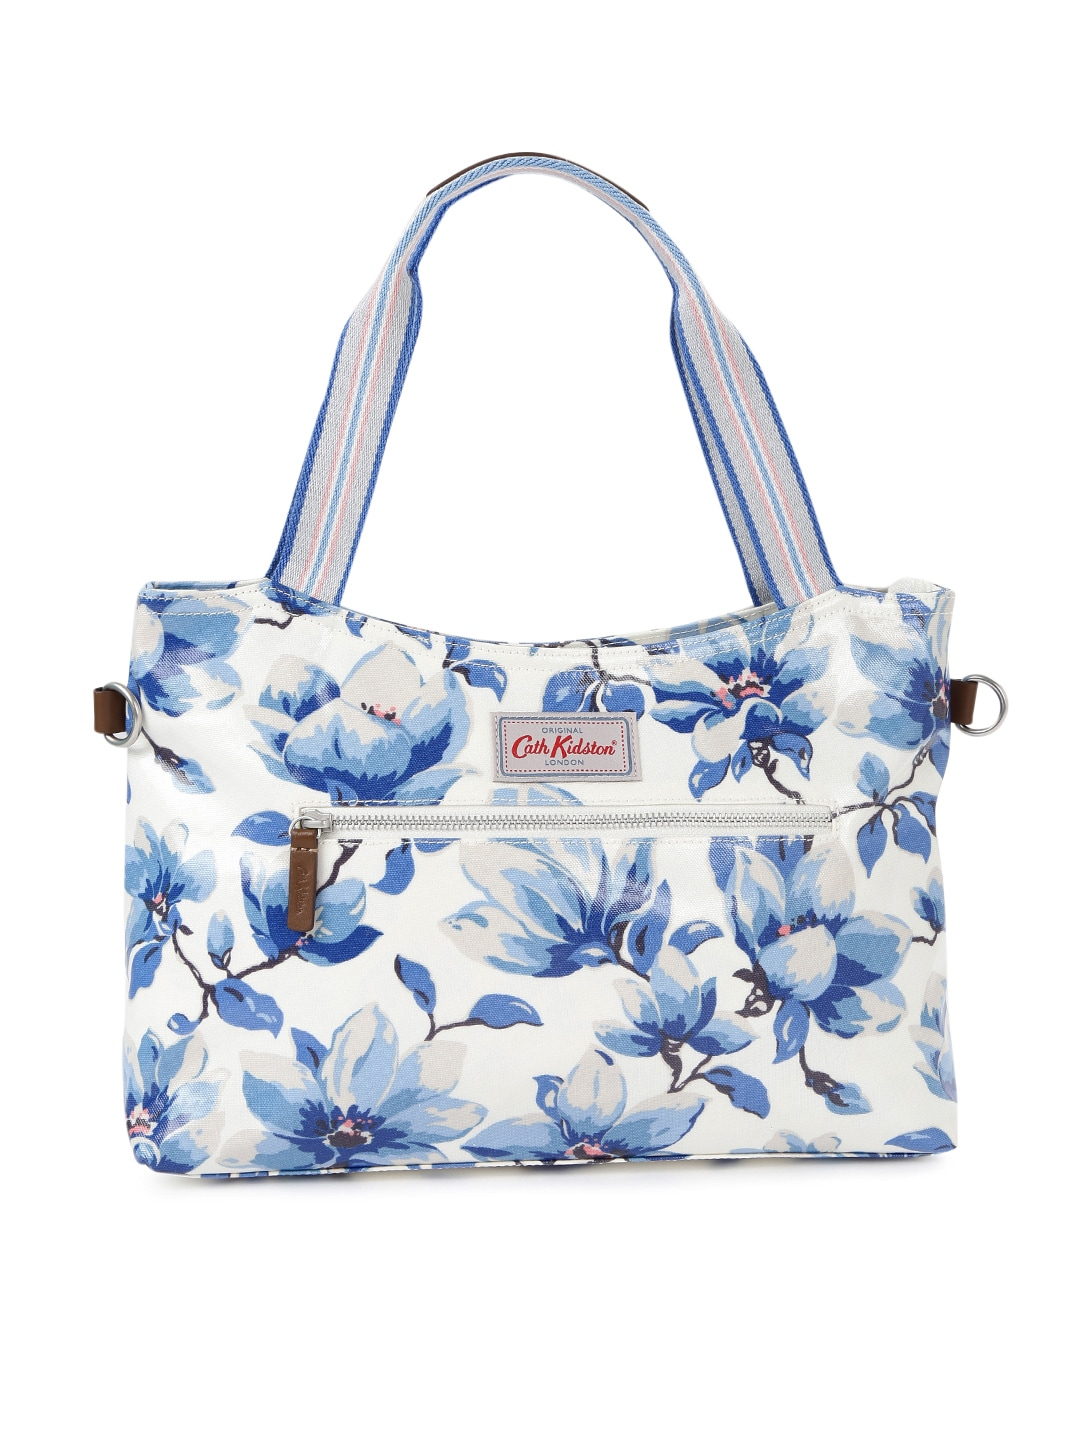 Cath Kidston Bags - Buy Cath Kidston Bags online in India c20e258aac416